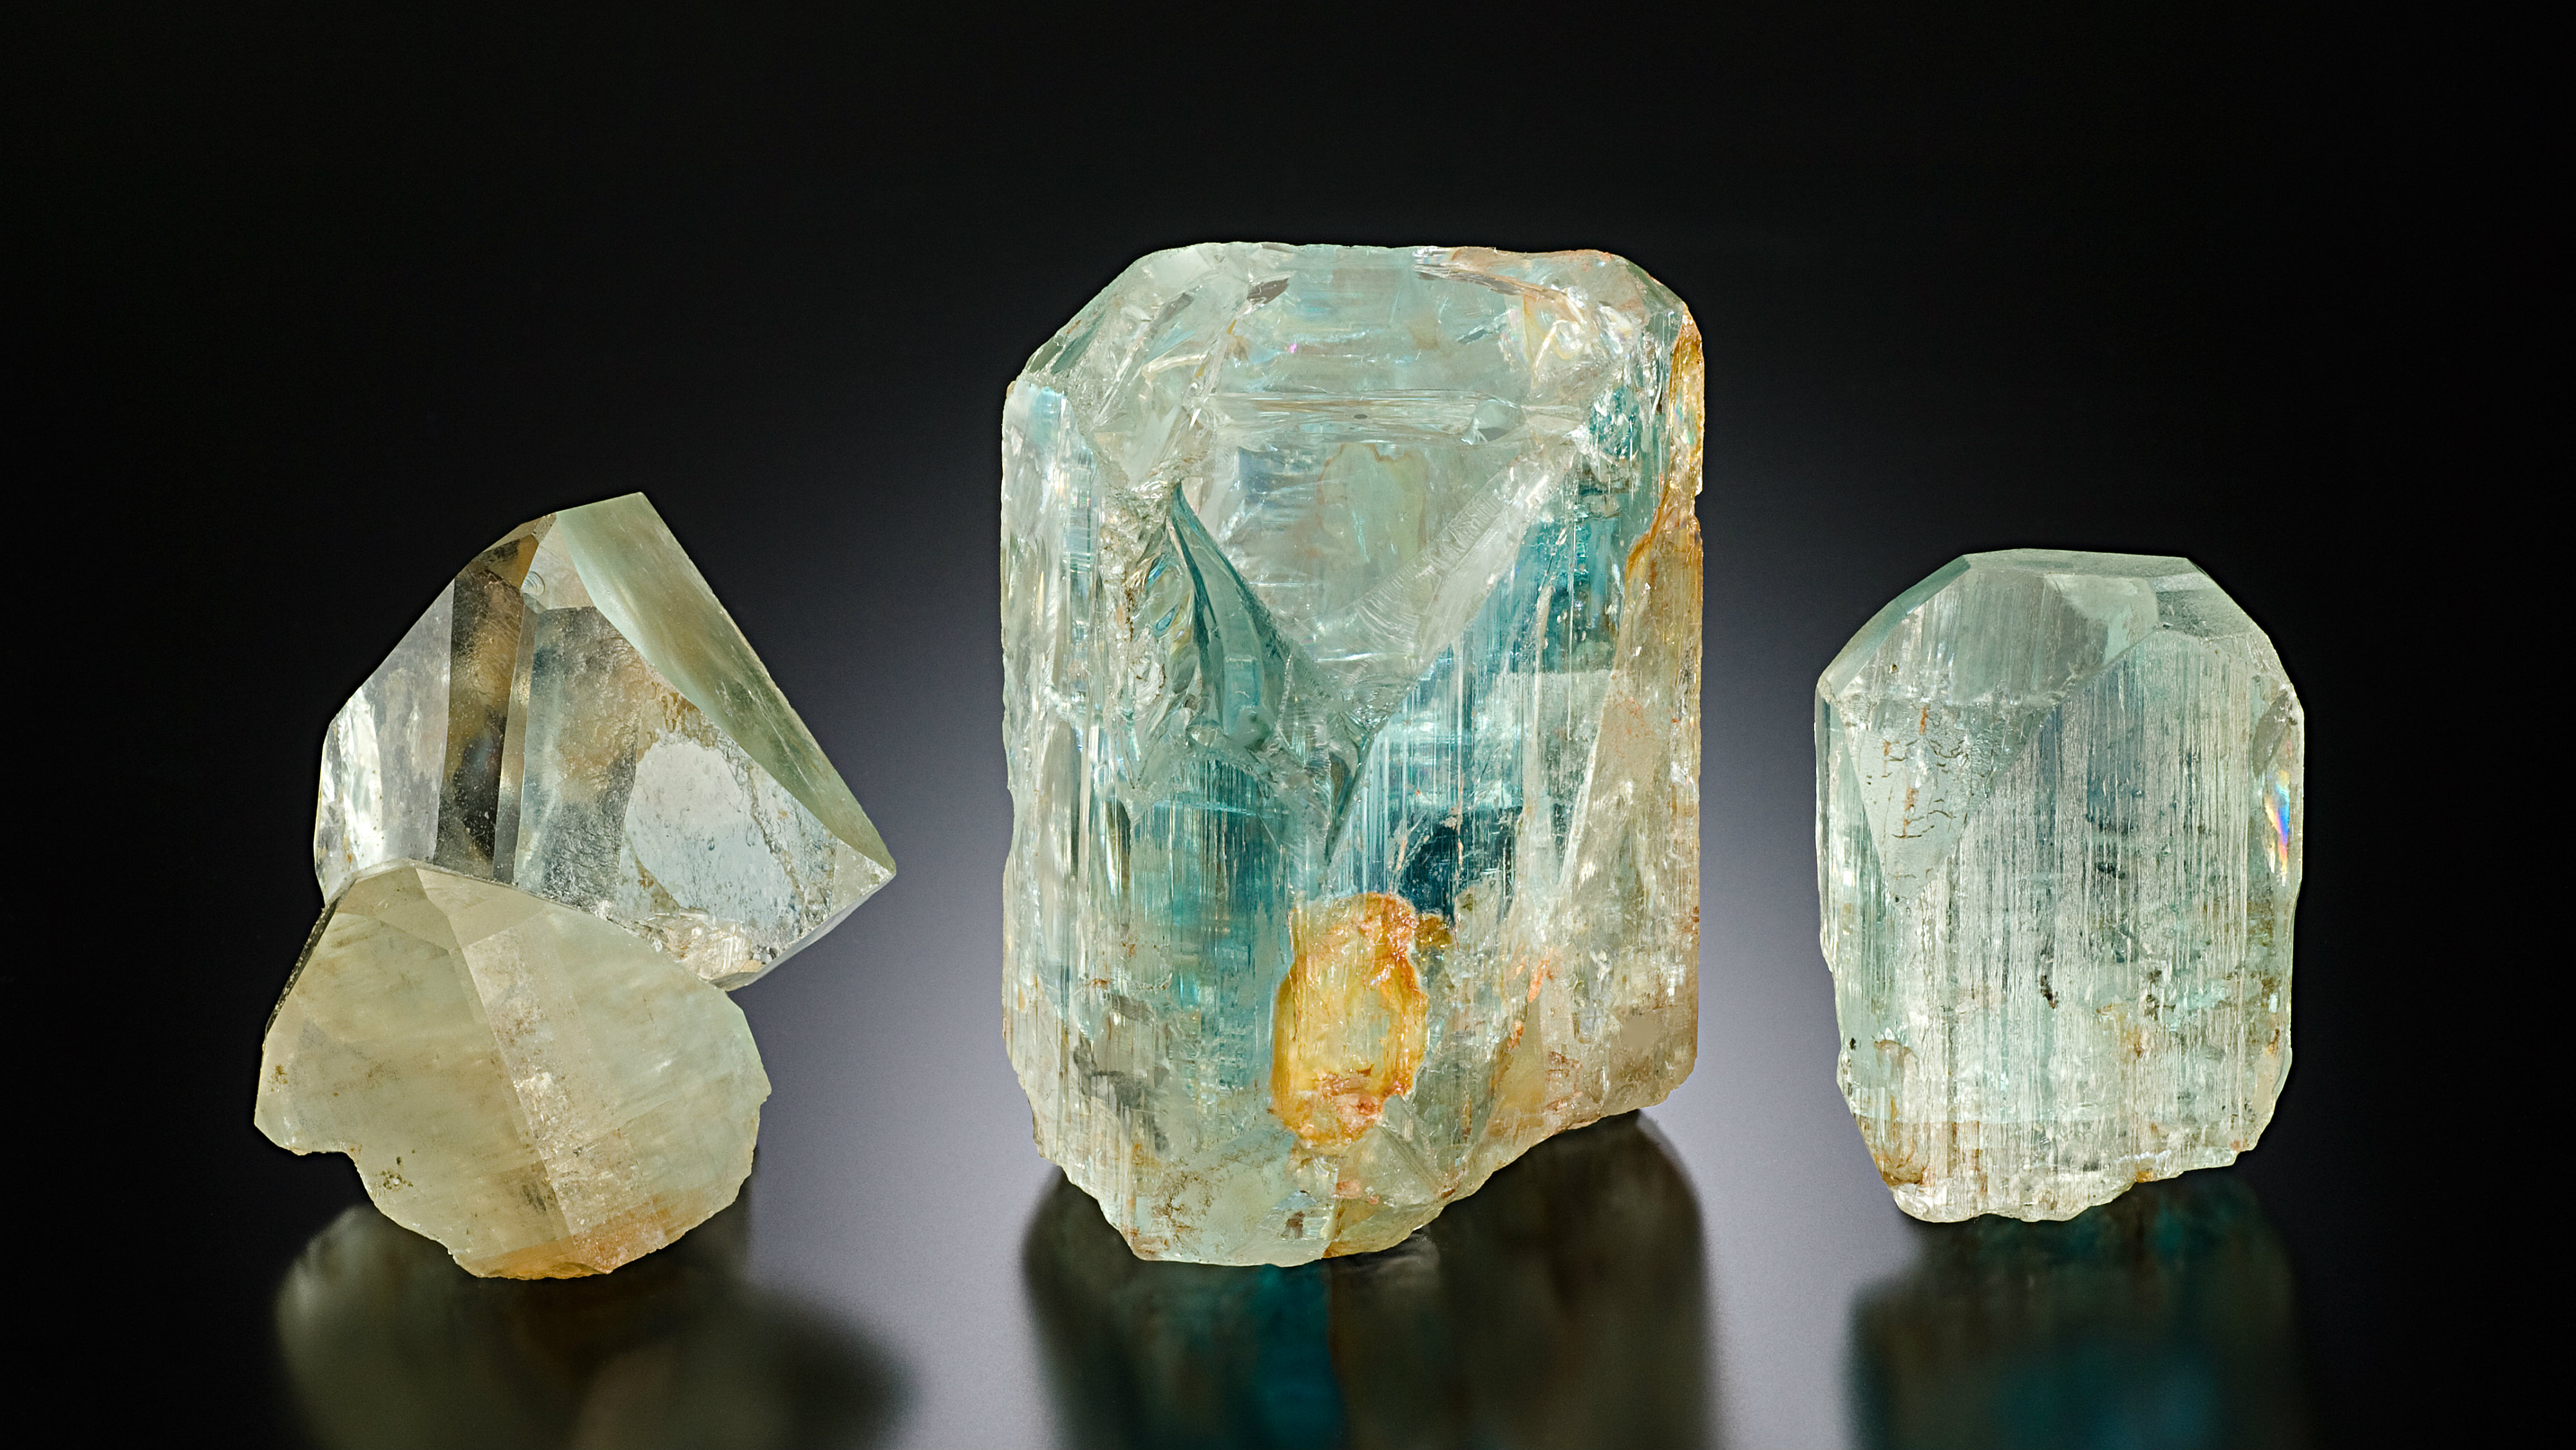 <p>Three Topaz crystals from the Tarryall Mountains in Colo. The largest one weighs 8.5 ounces.</p>